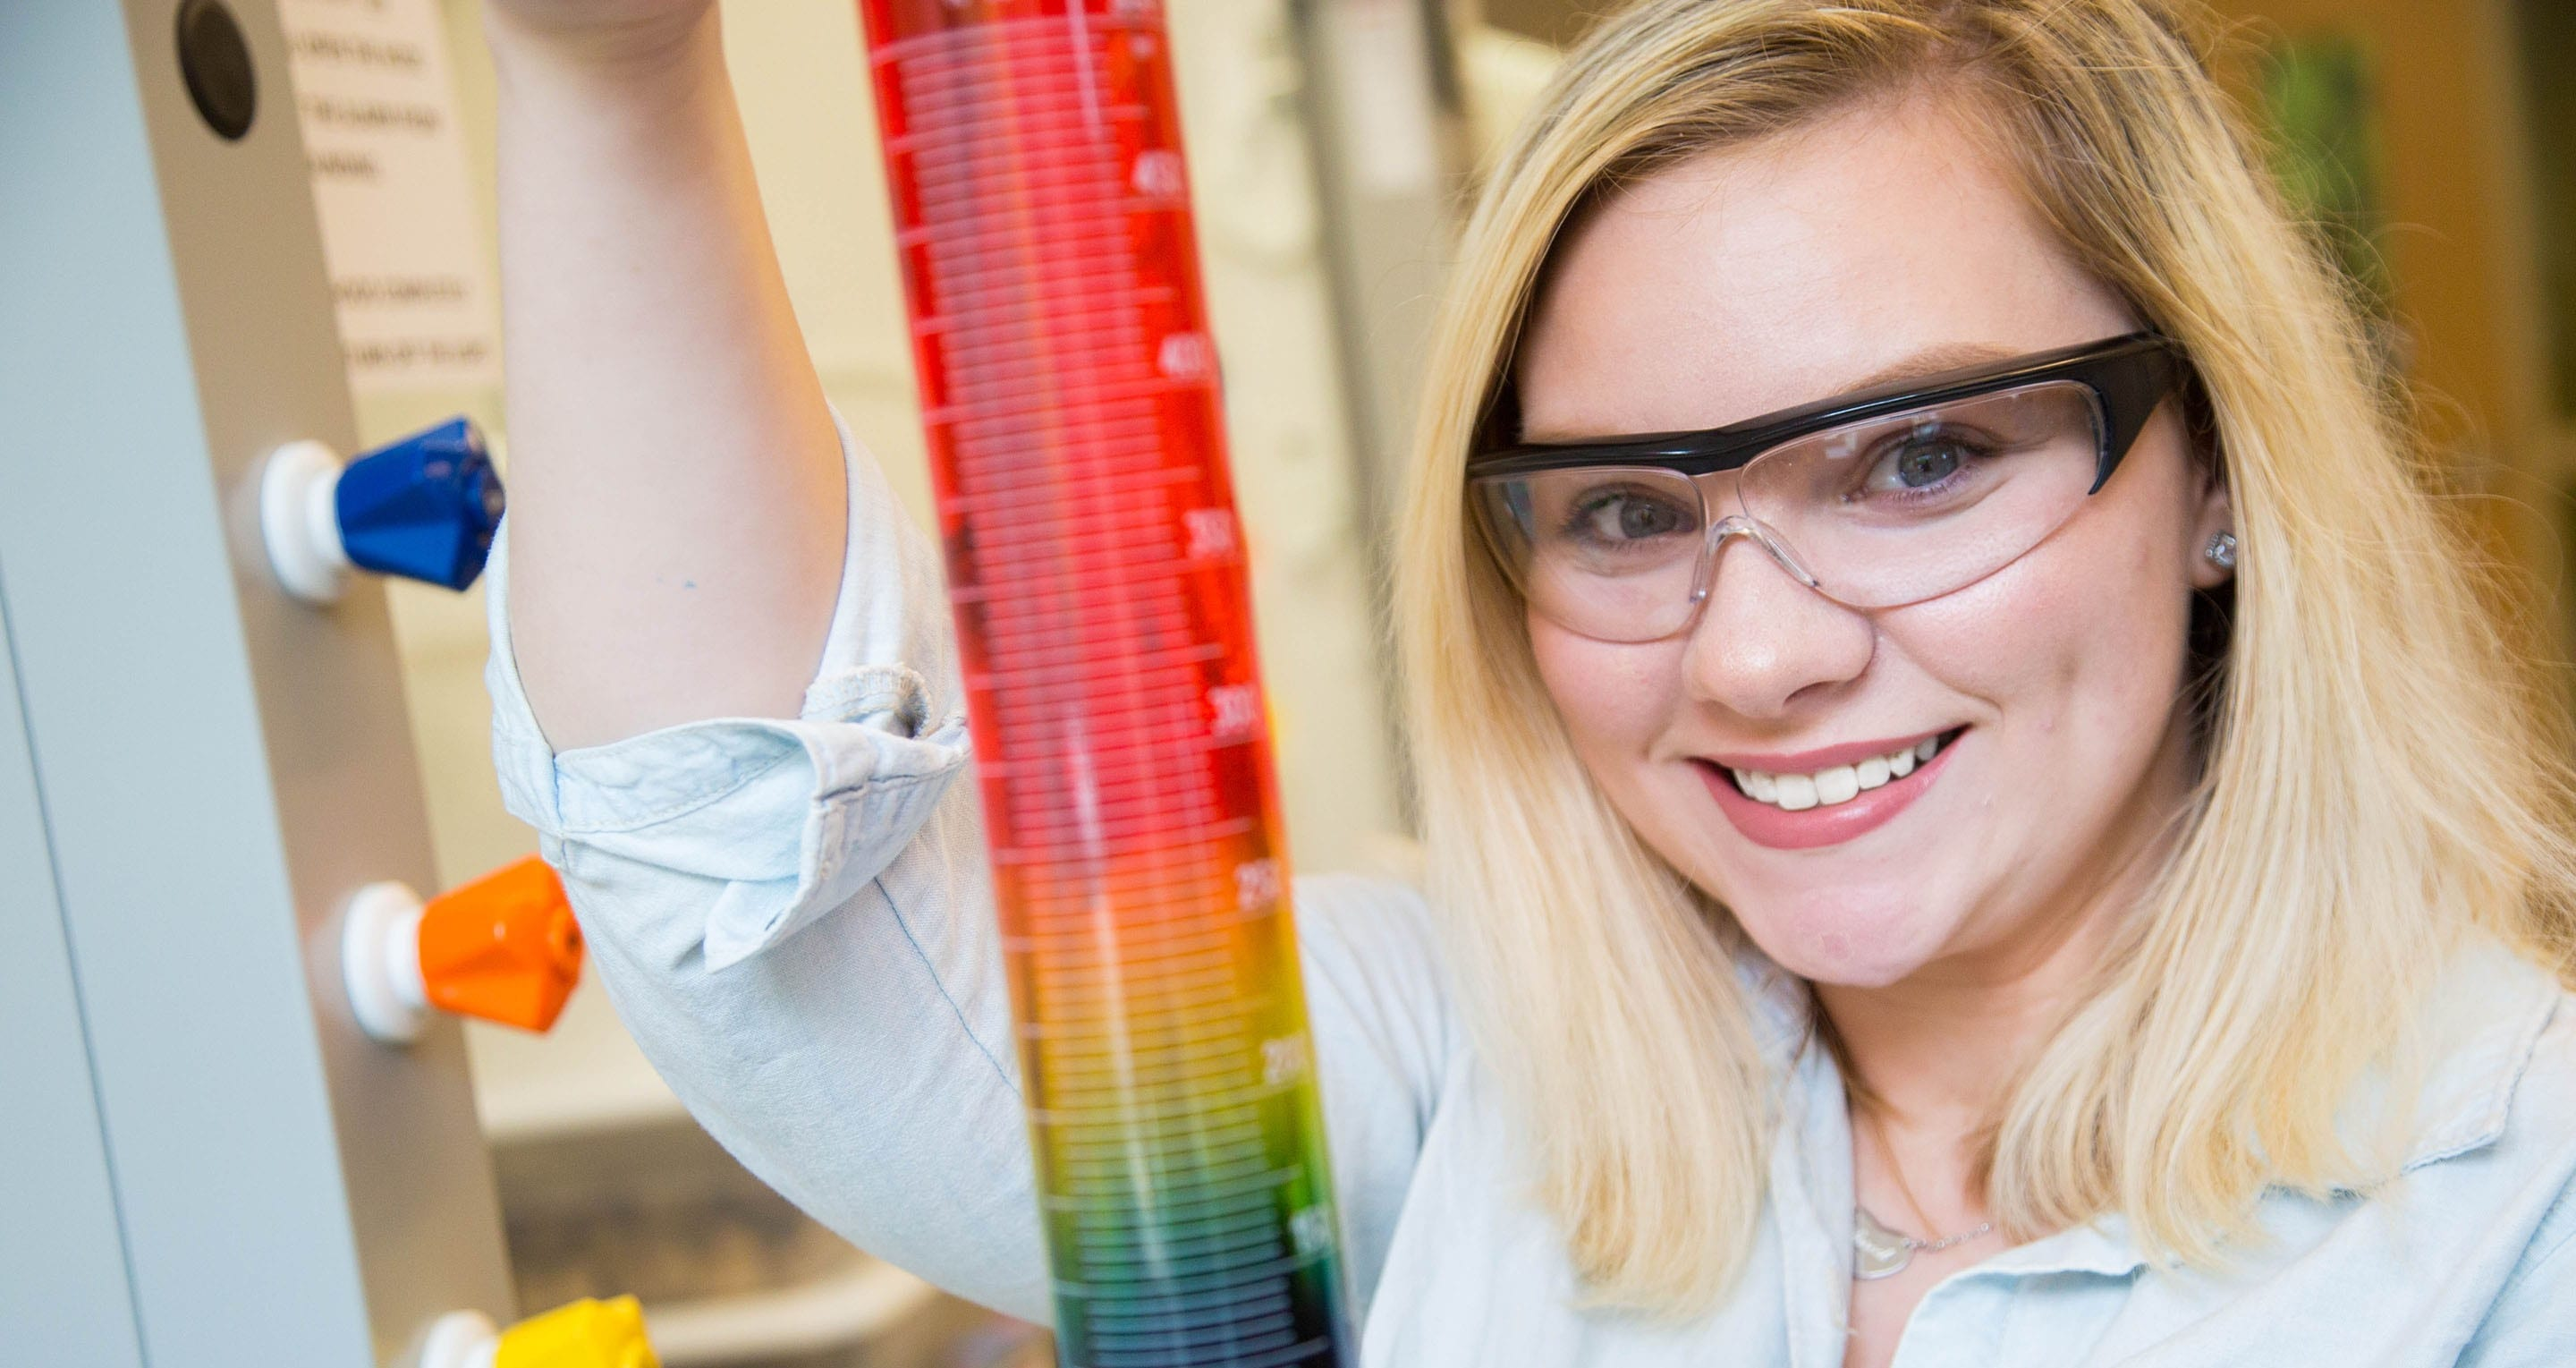 Mikayla Stephans - Young woman holding science equipment wearing safety glasses